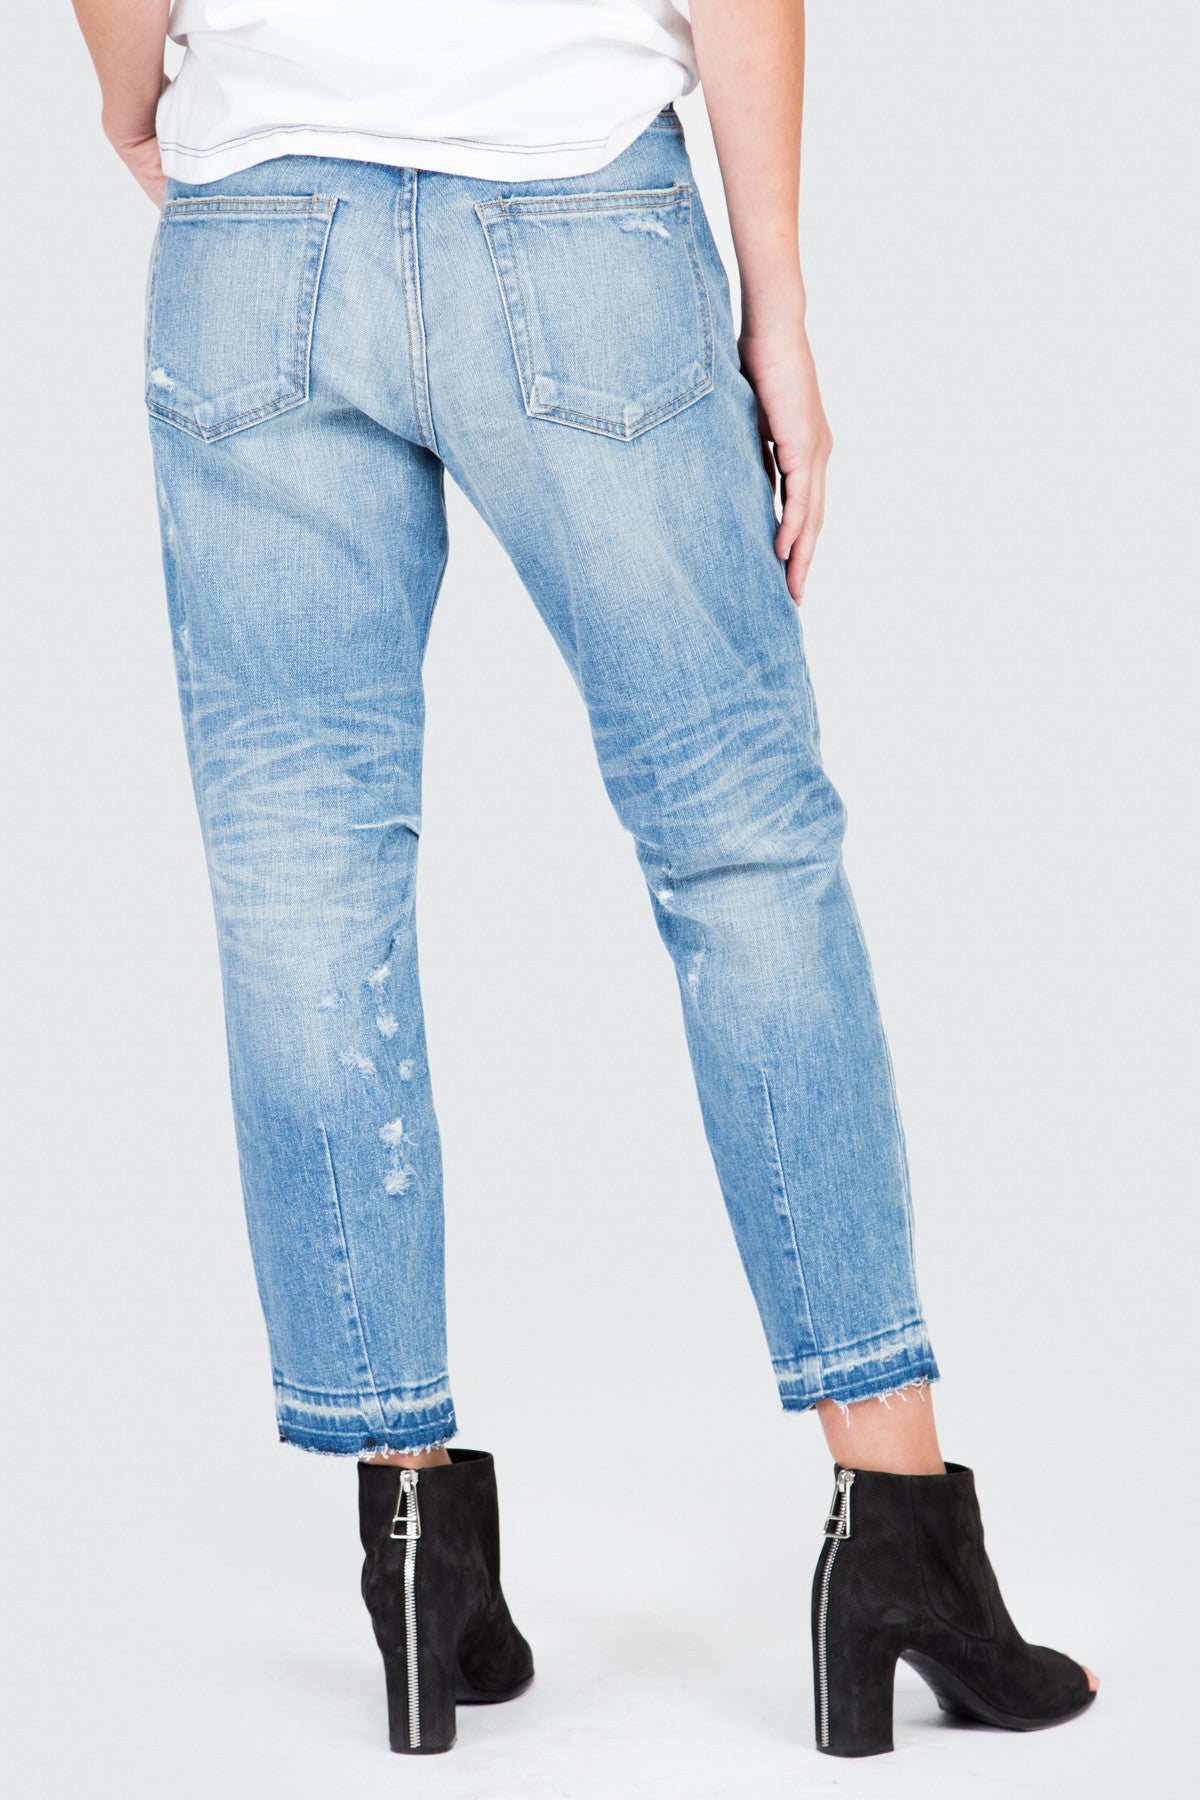 Vintage Medium Blue Boyfriend Jean Distressed - FRANKIE